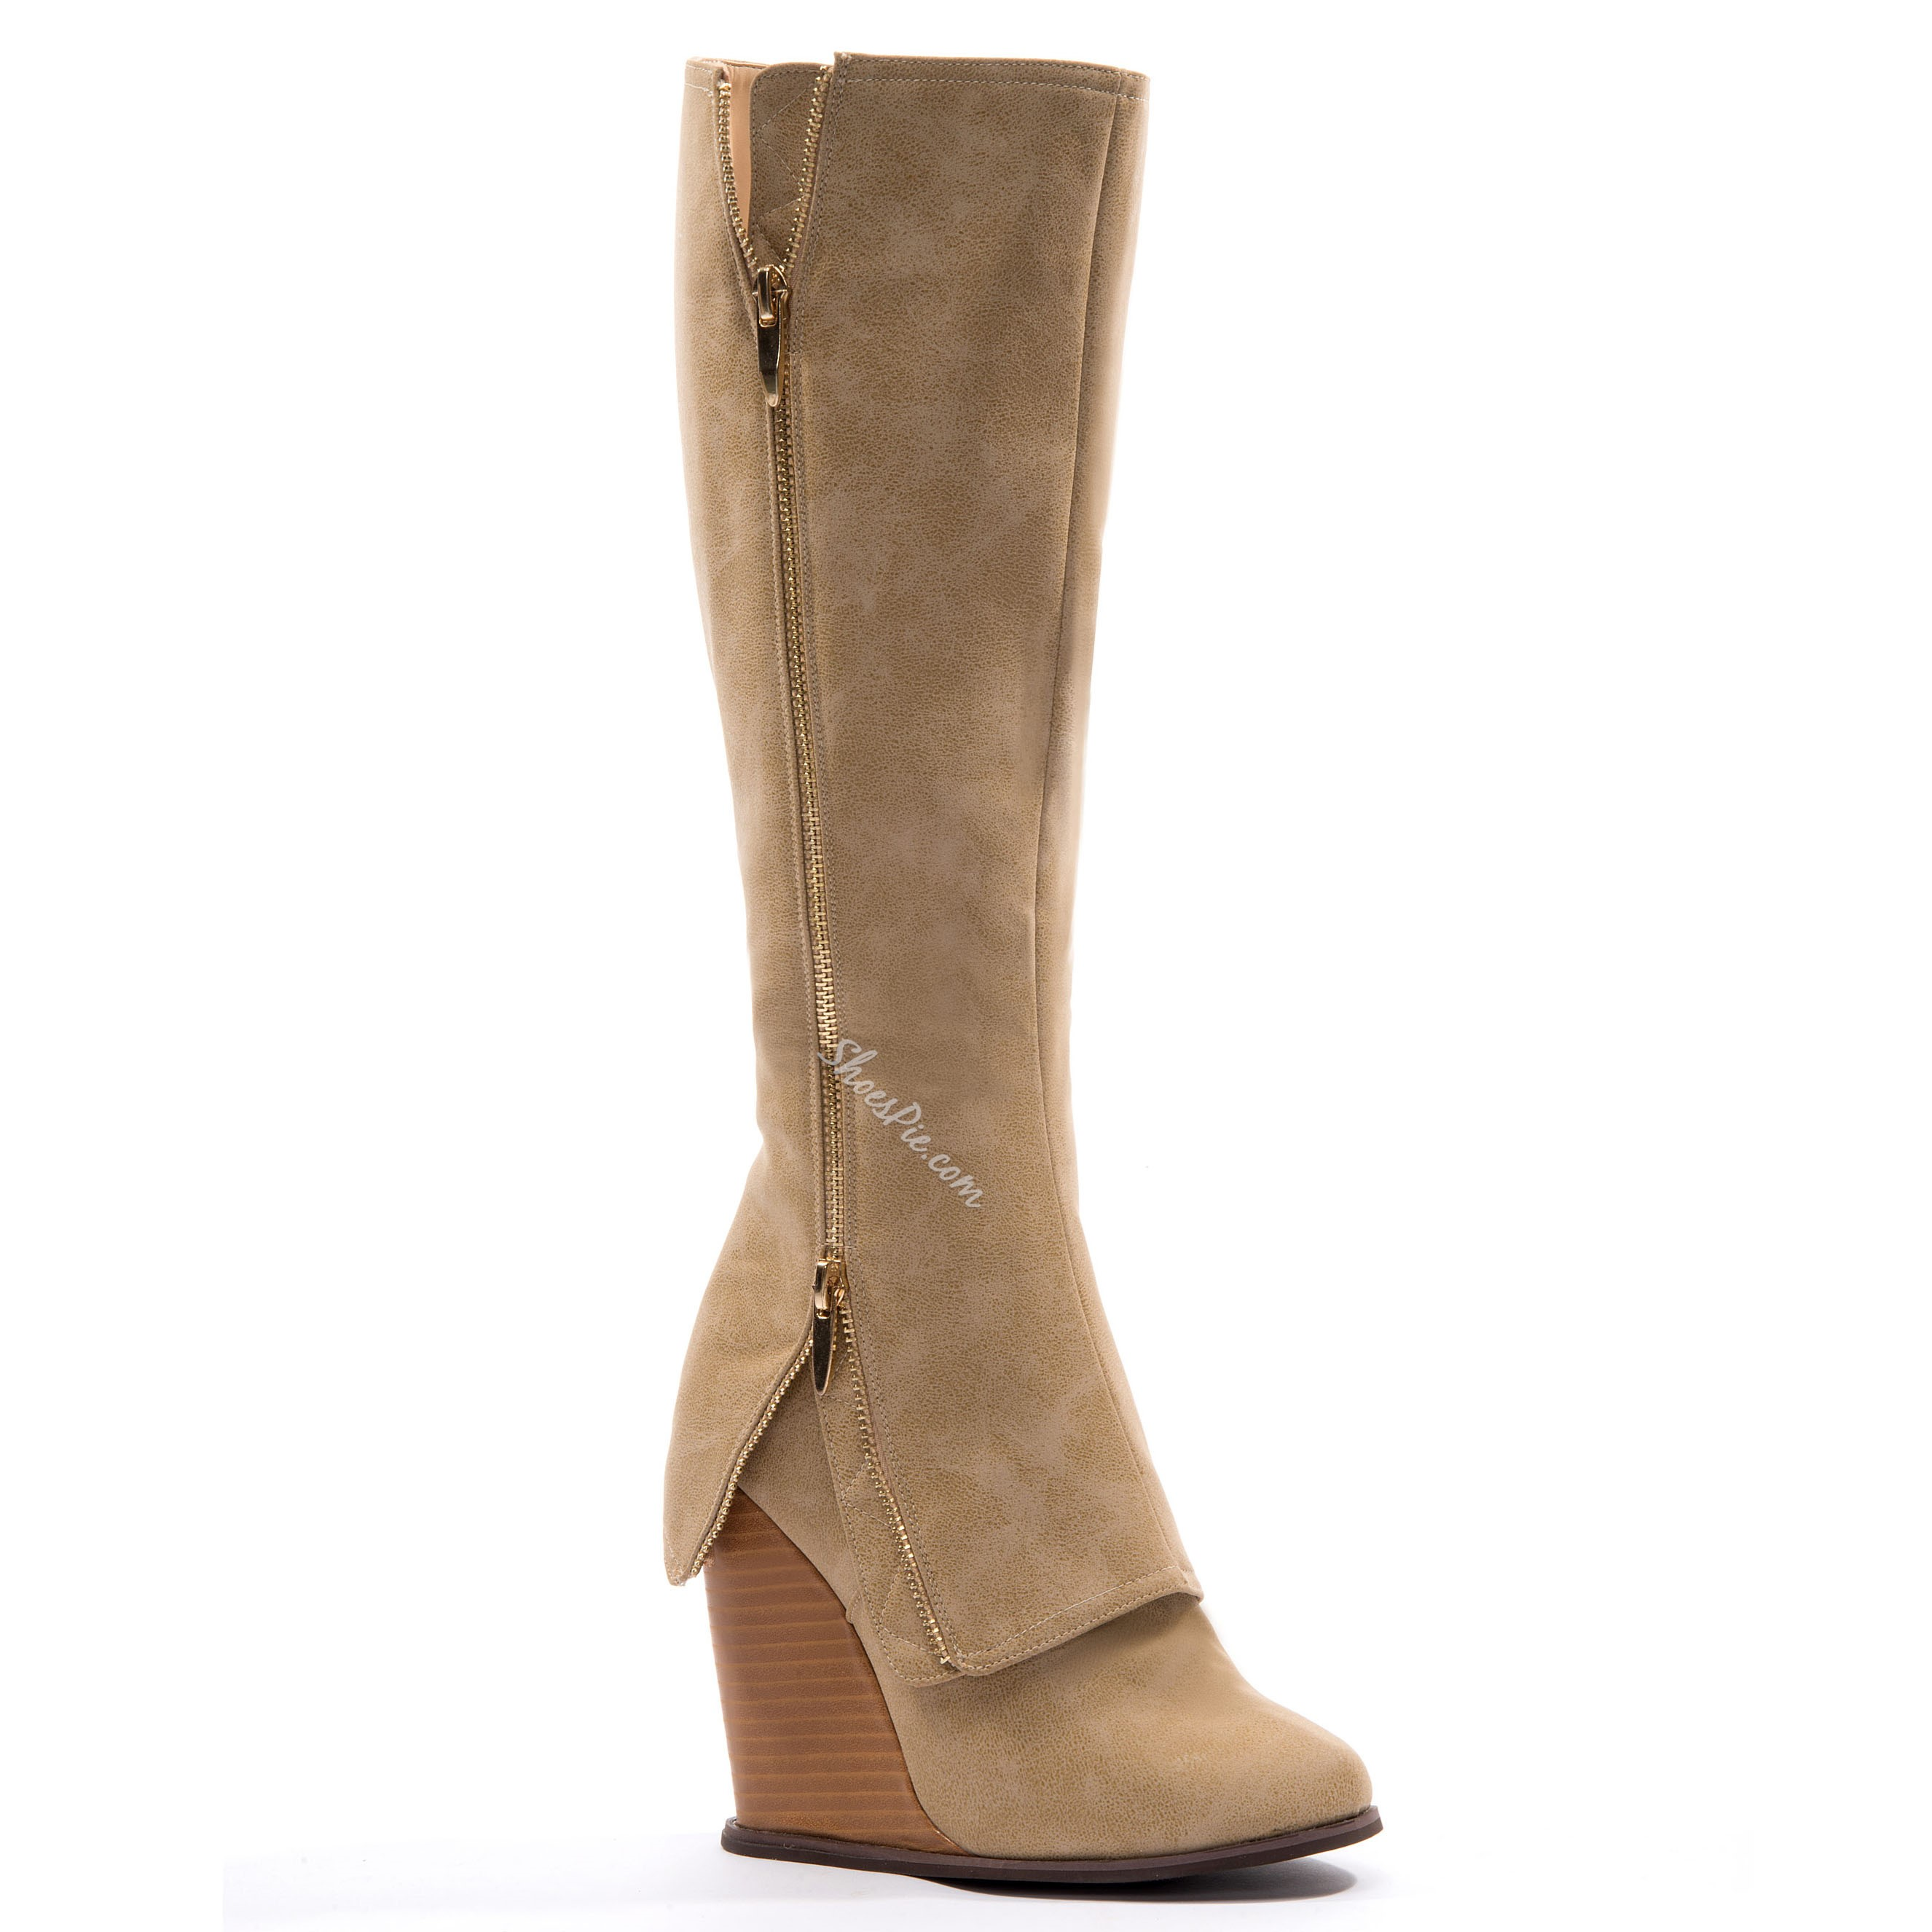 Glamerous Boots Wedge Kneel-high Zippers